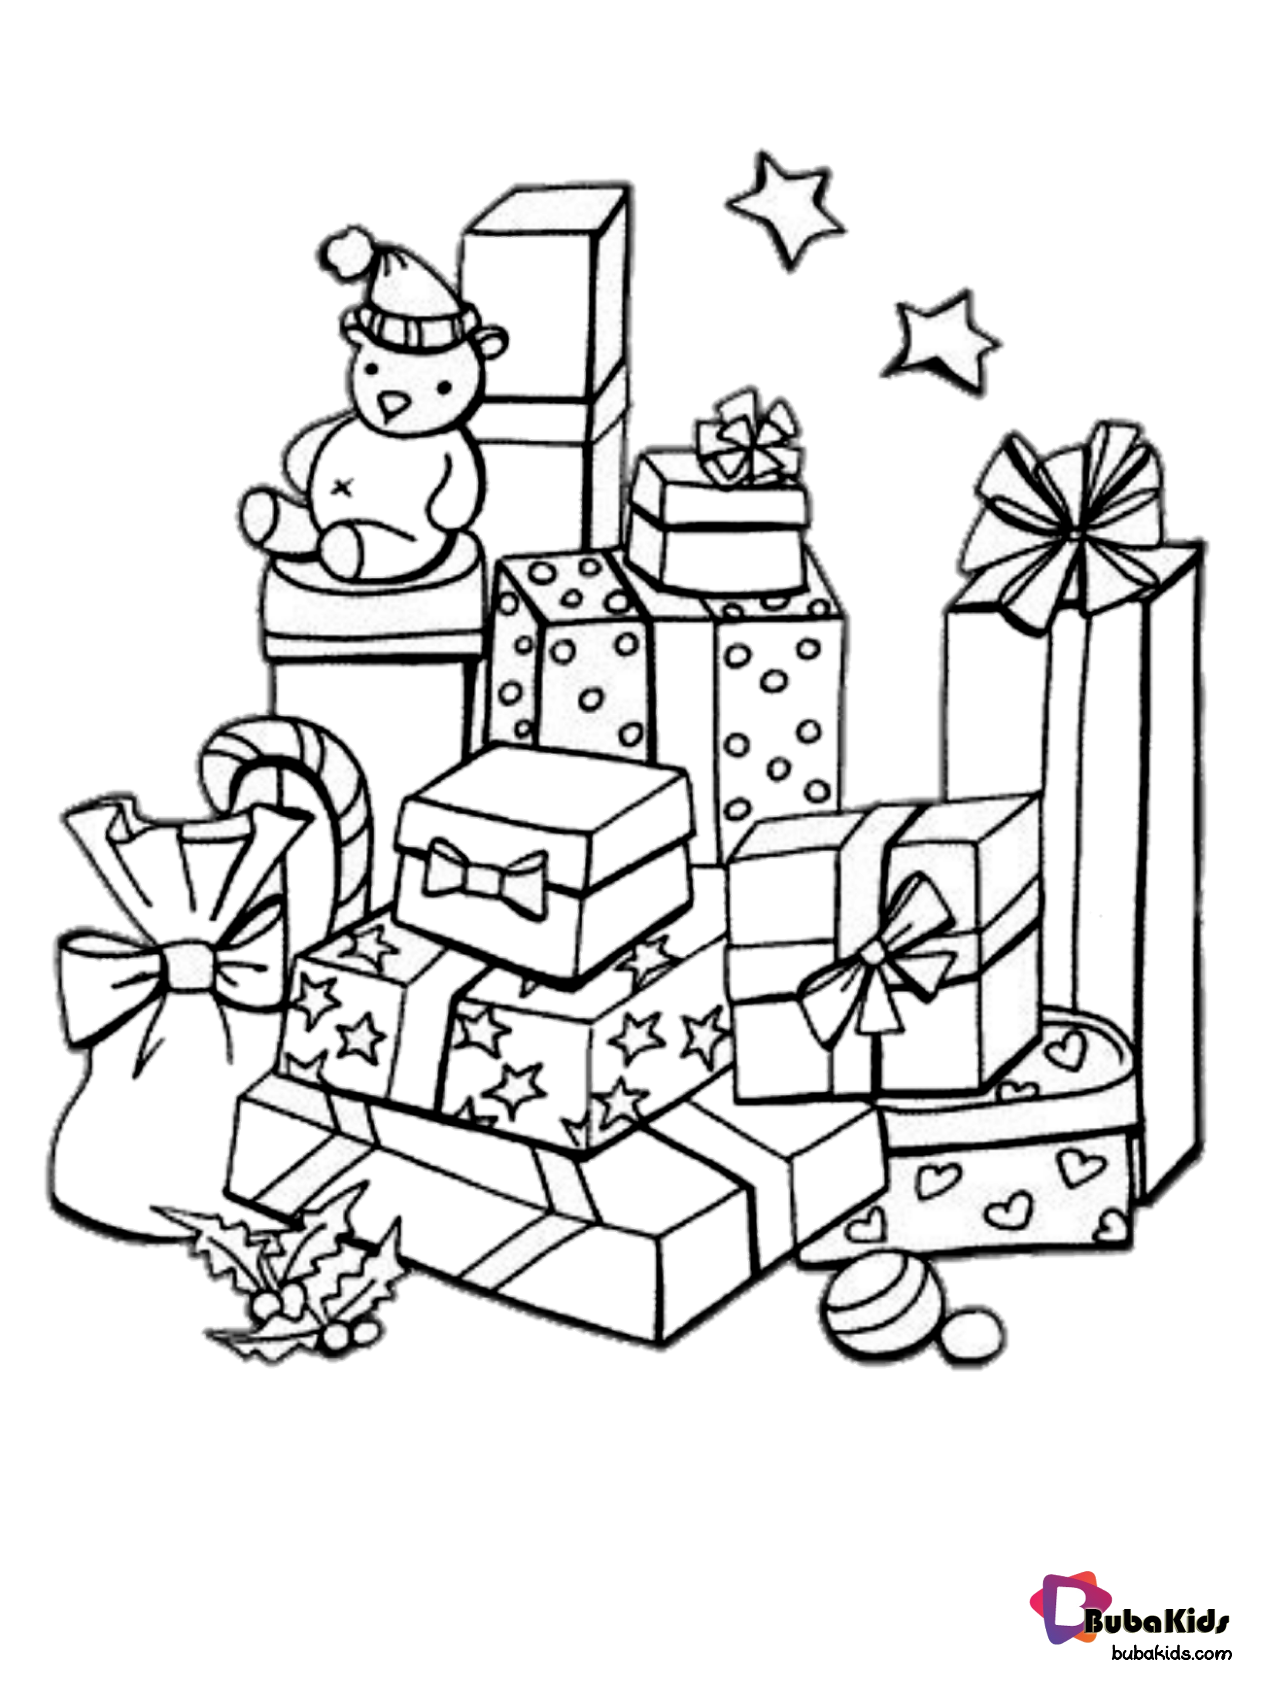 Free download and printable christmas gifts coloring picture Wallpaper